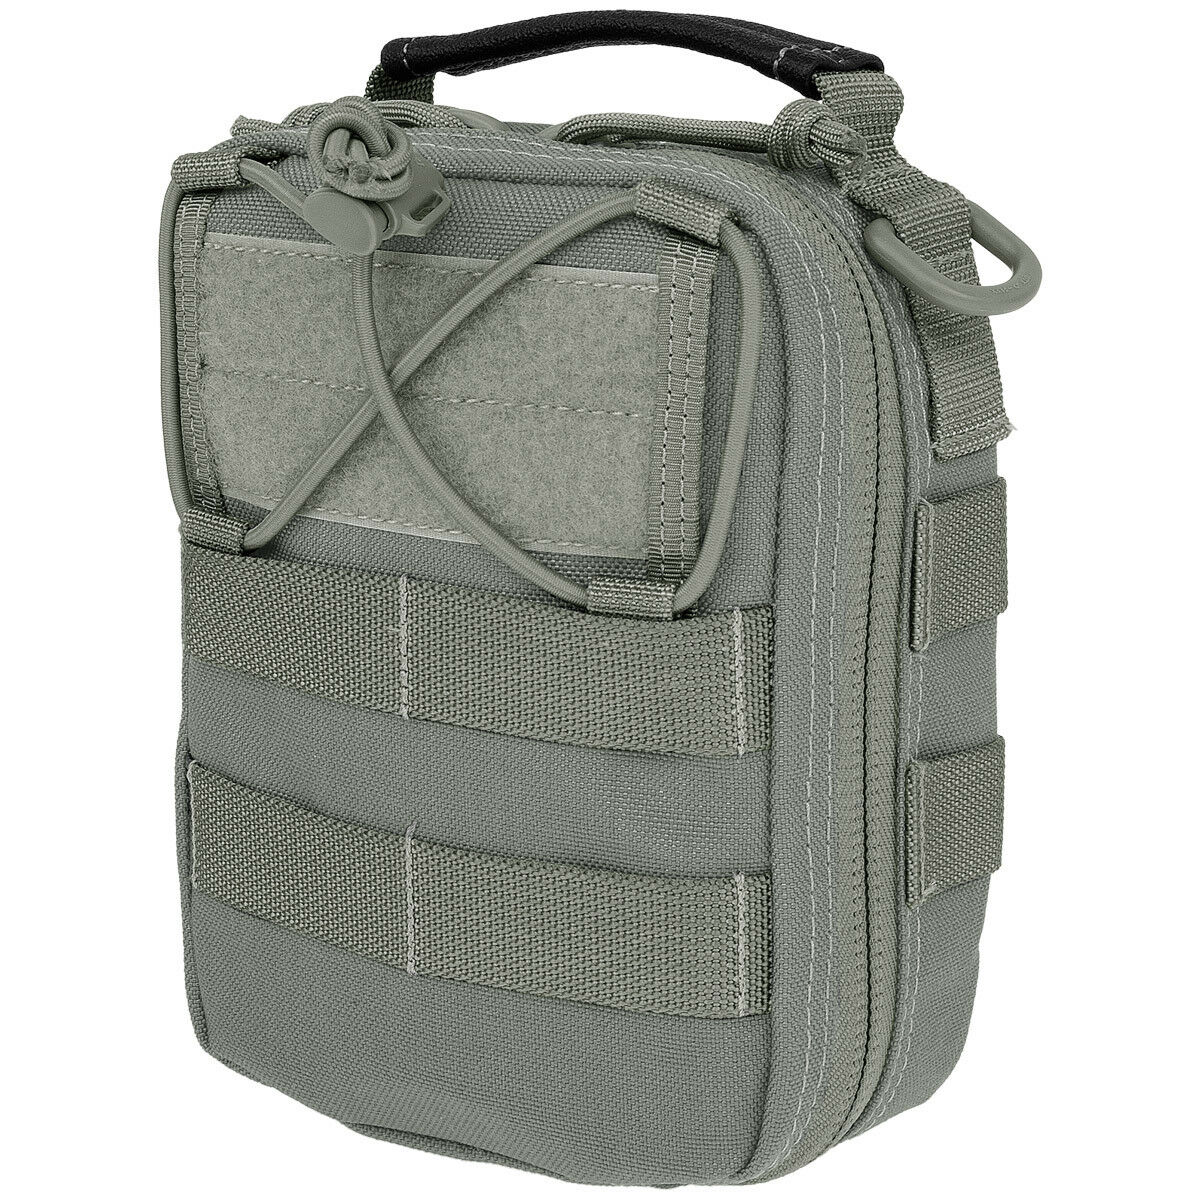 Maxpedition FR-1 Medical Pouch universel organisateur MOLLE sac feuillage vert